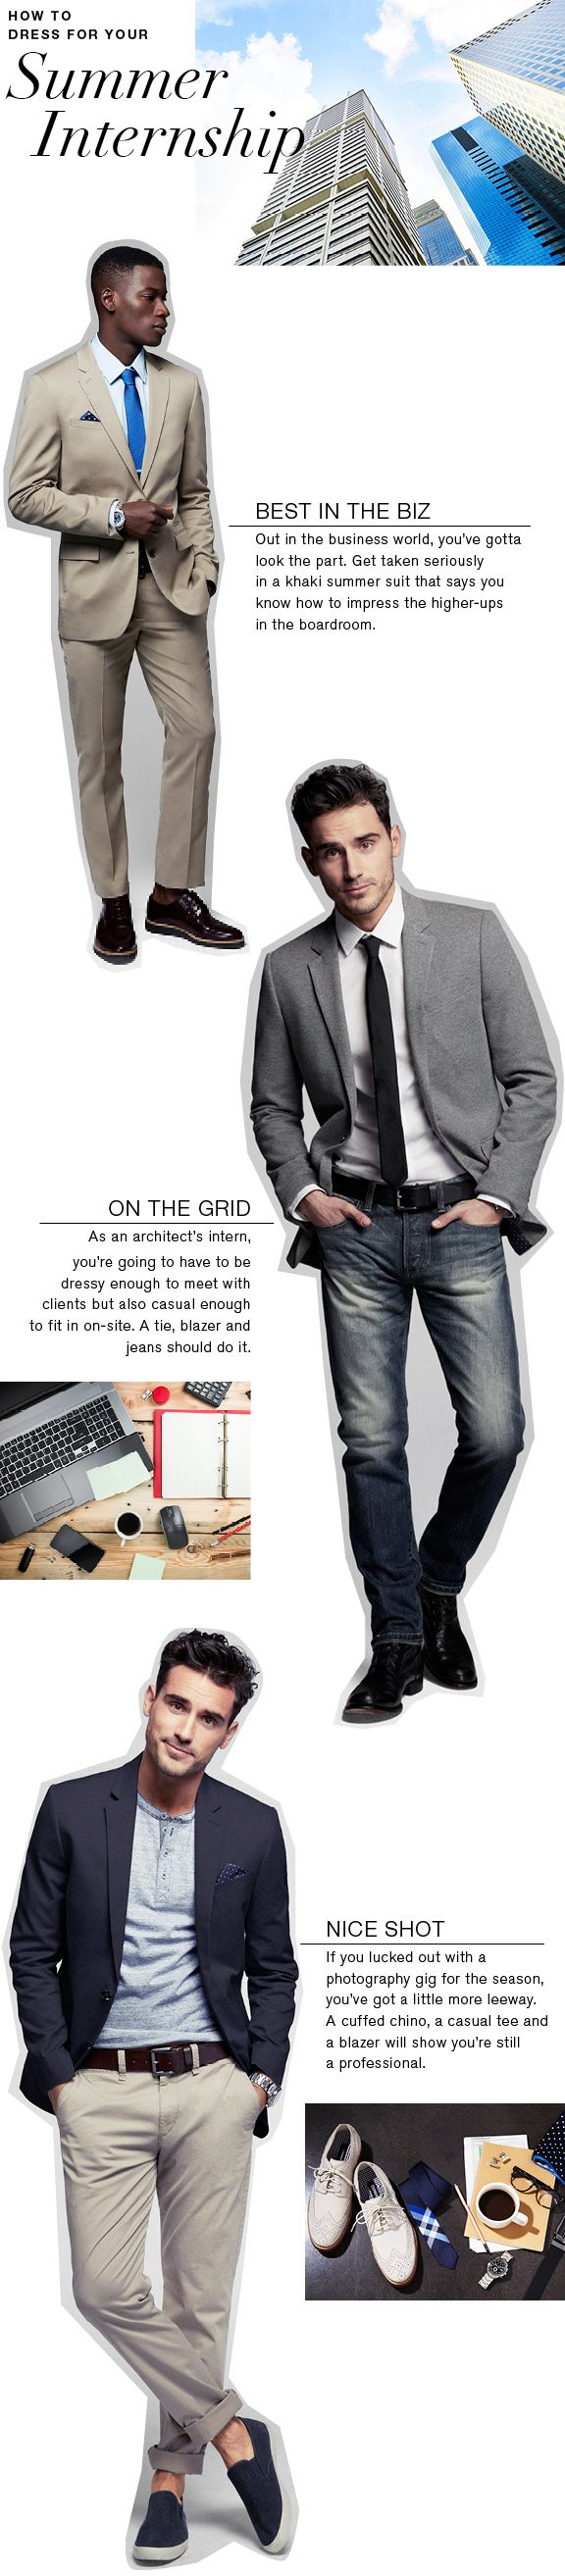 30 best images about Business Casual to Dress on Pinterest ...